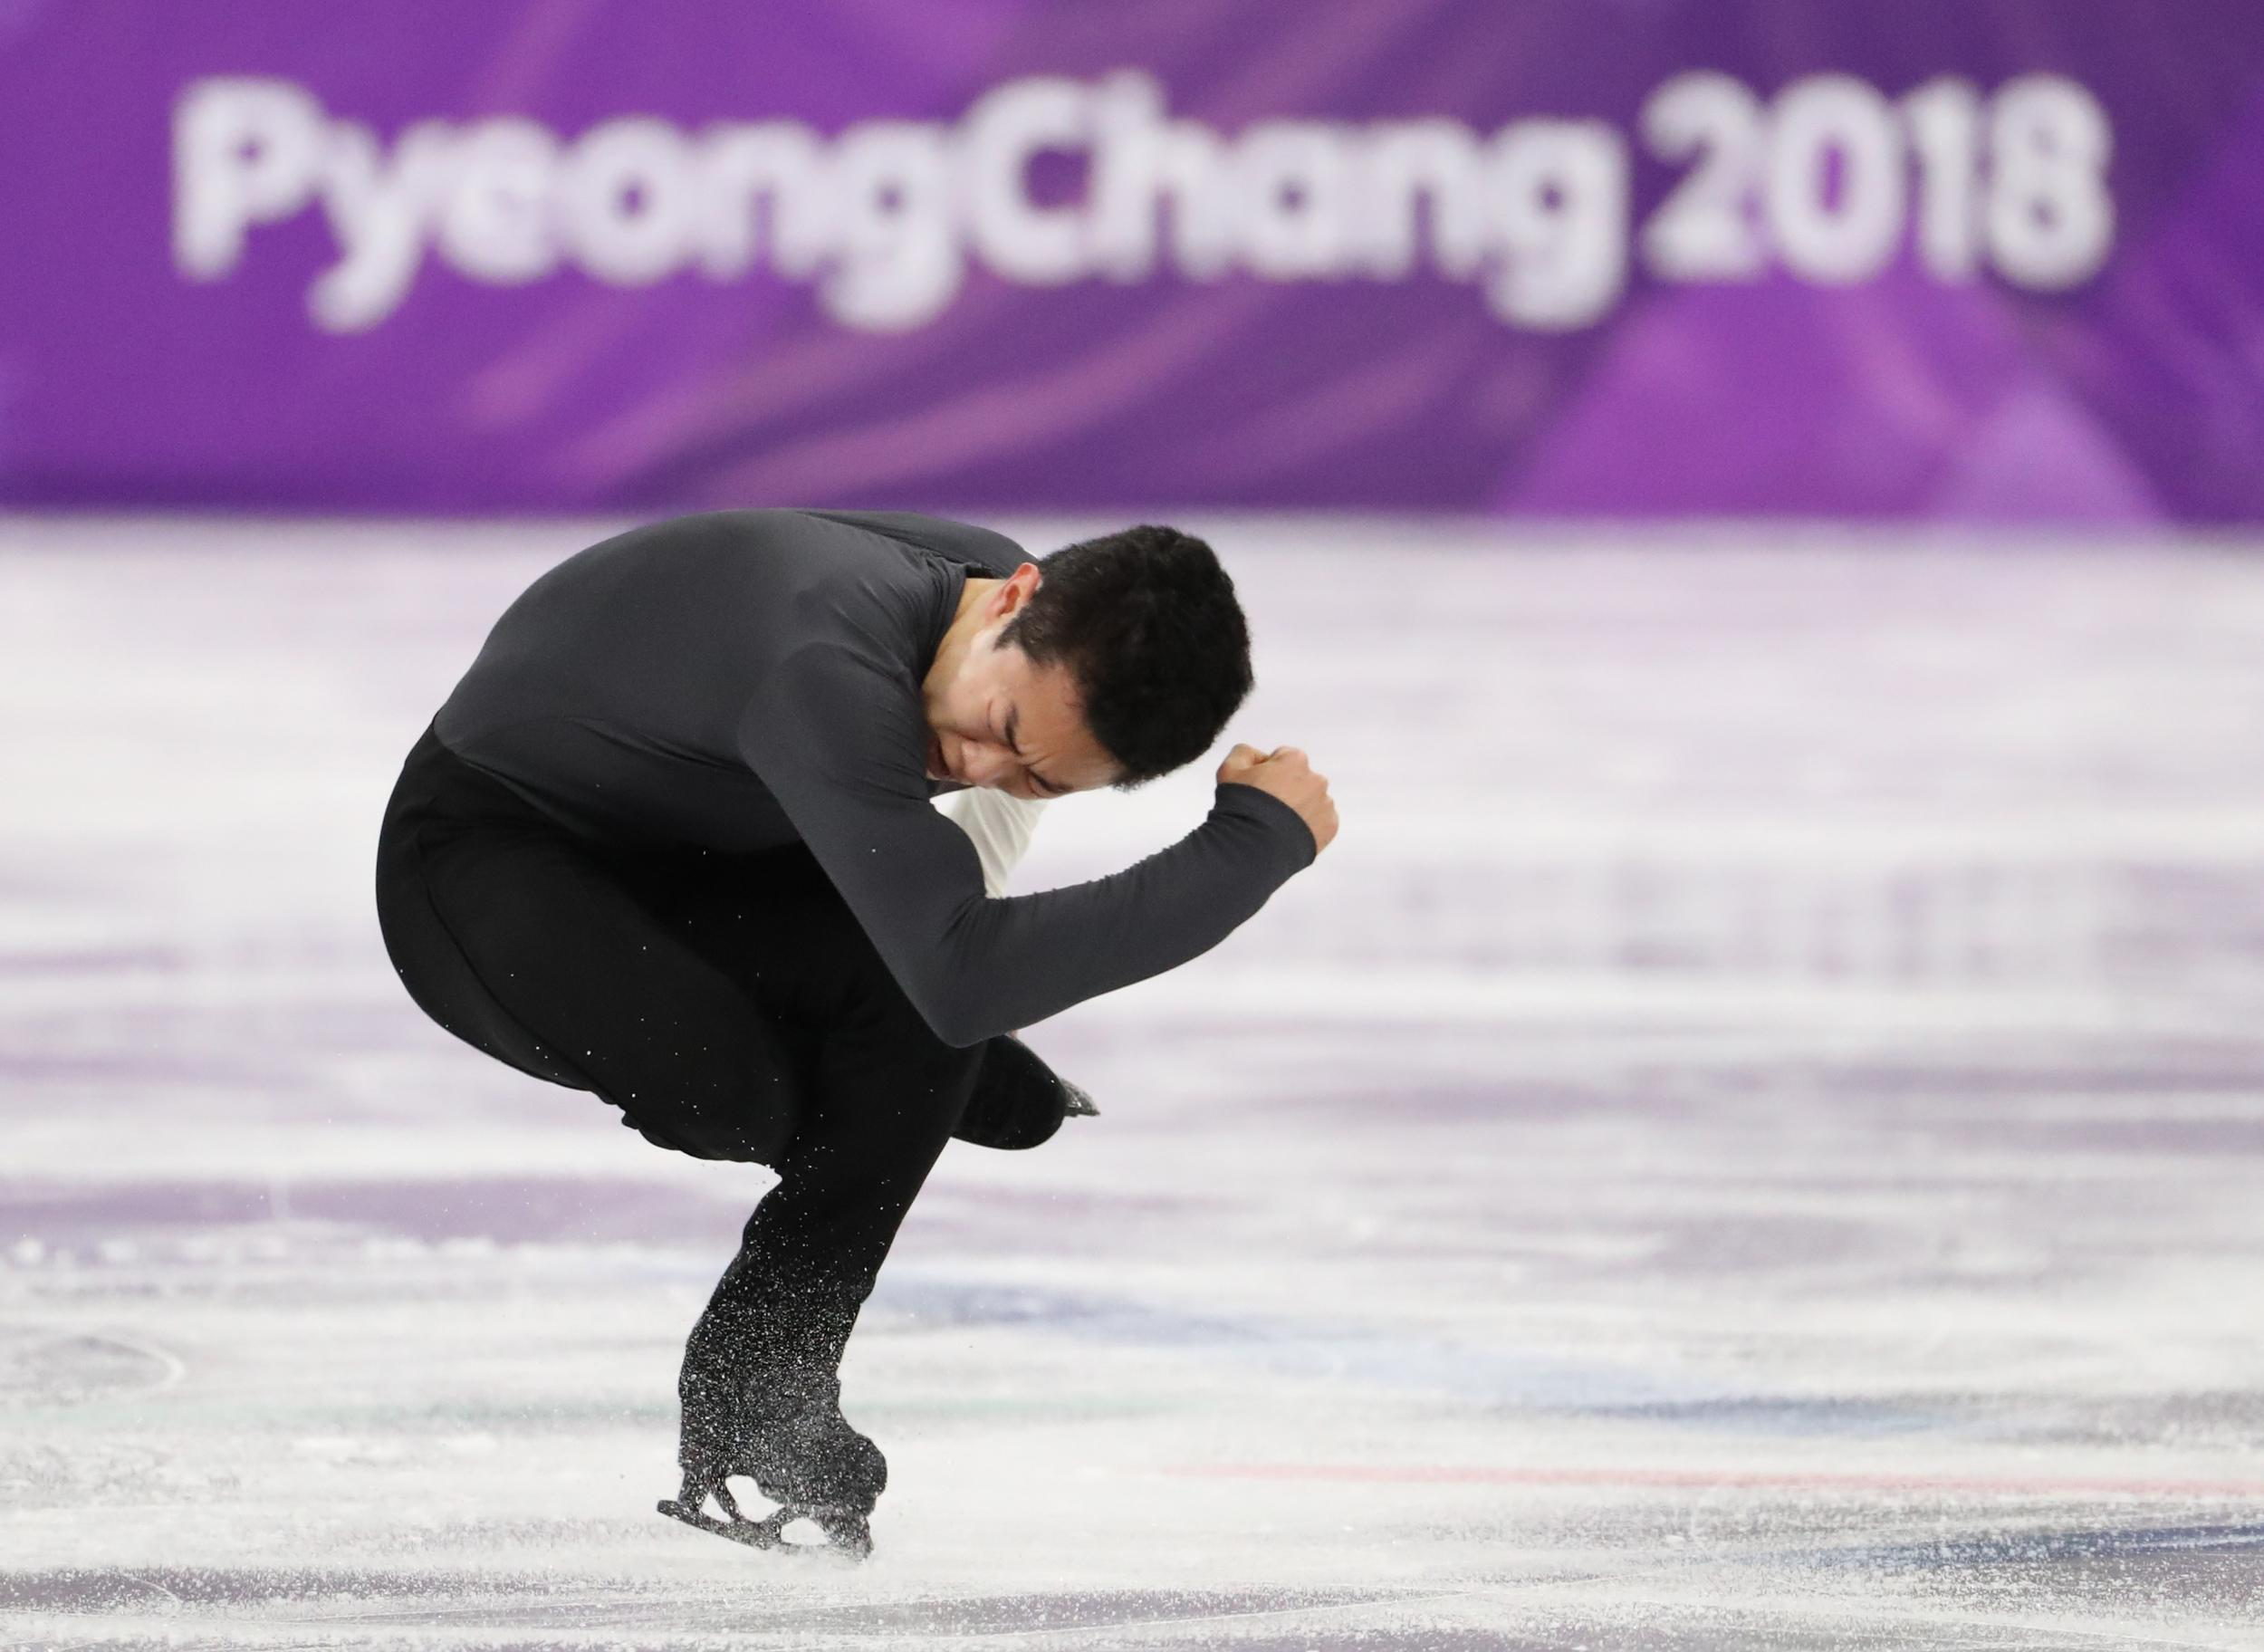 Figure Skating ? Pyeongchang 2018 Winter Olympics ? Men Single Skating short program competition ? Gangneung Ice Arena - Gangneung, South Korea ? February 16, 2018 - Nathan Chen of the U.S. performs. REUTERS/Lucy Nicholson